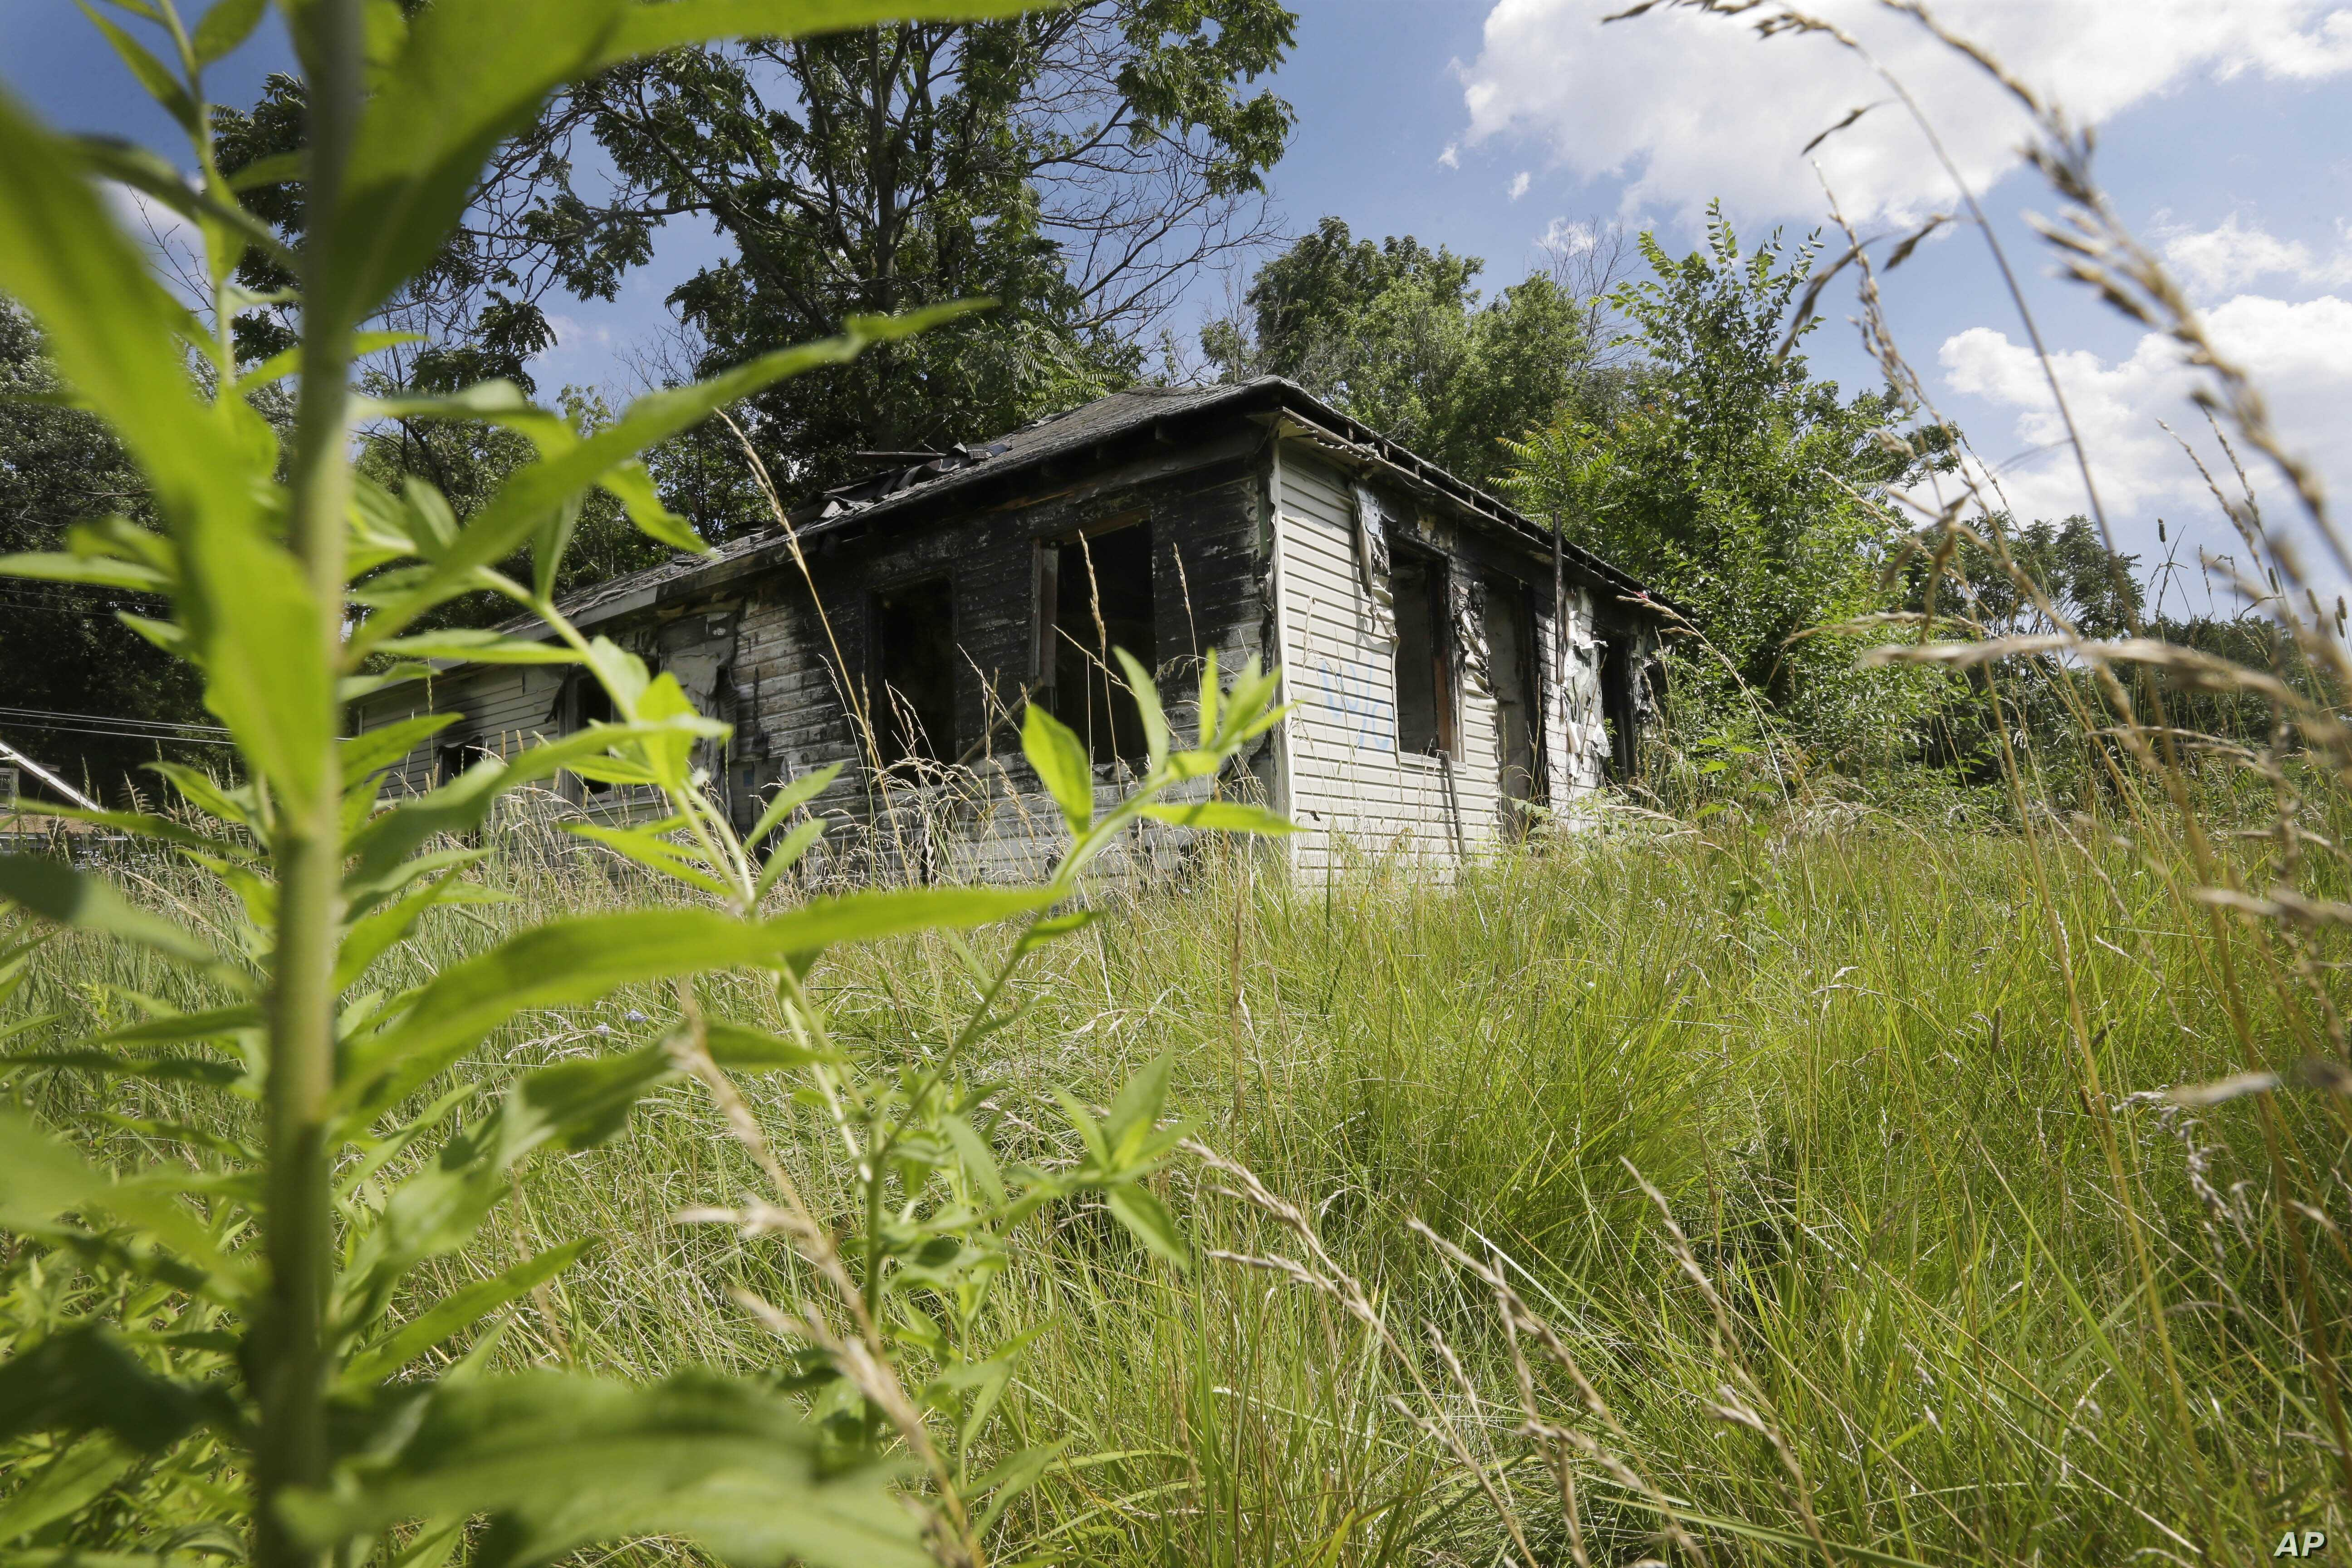 Studies: More Green Space, Less Crime, Depression in Poor